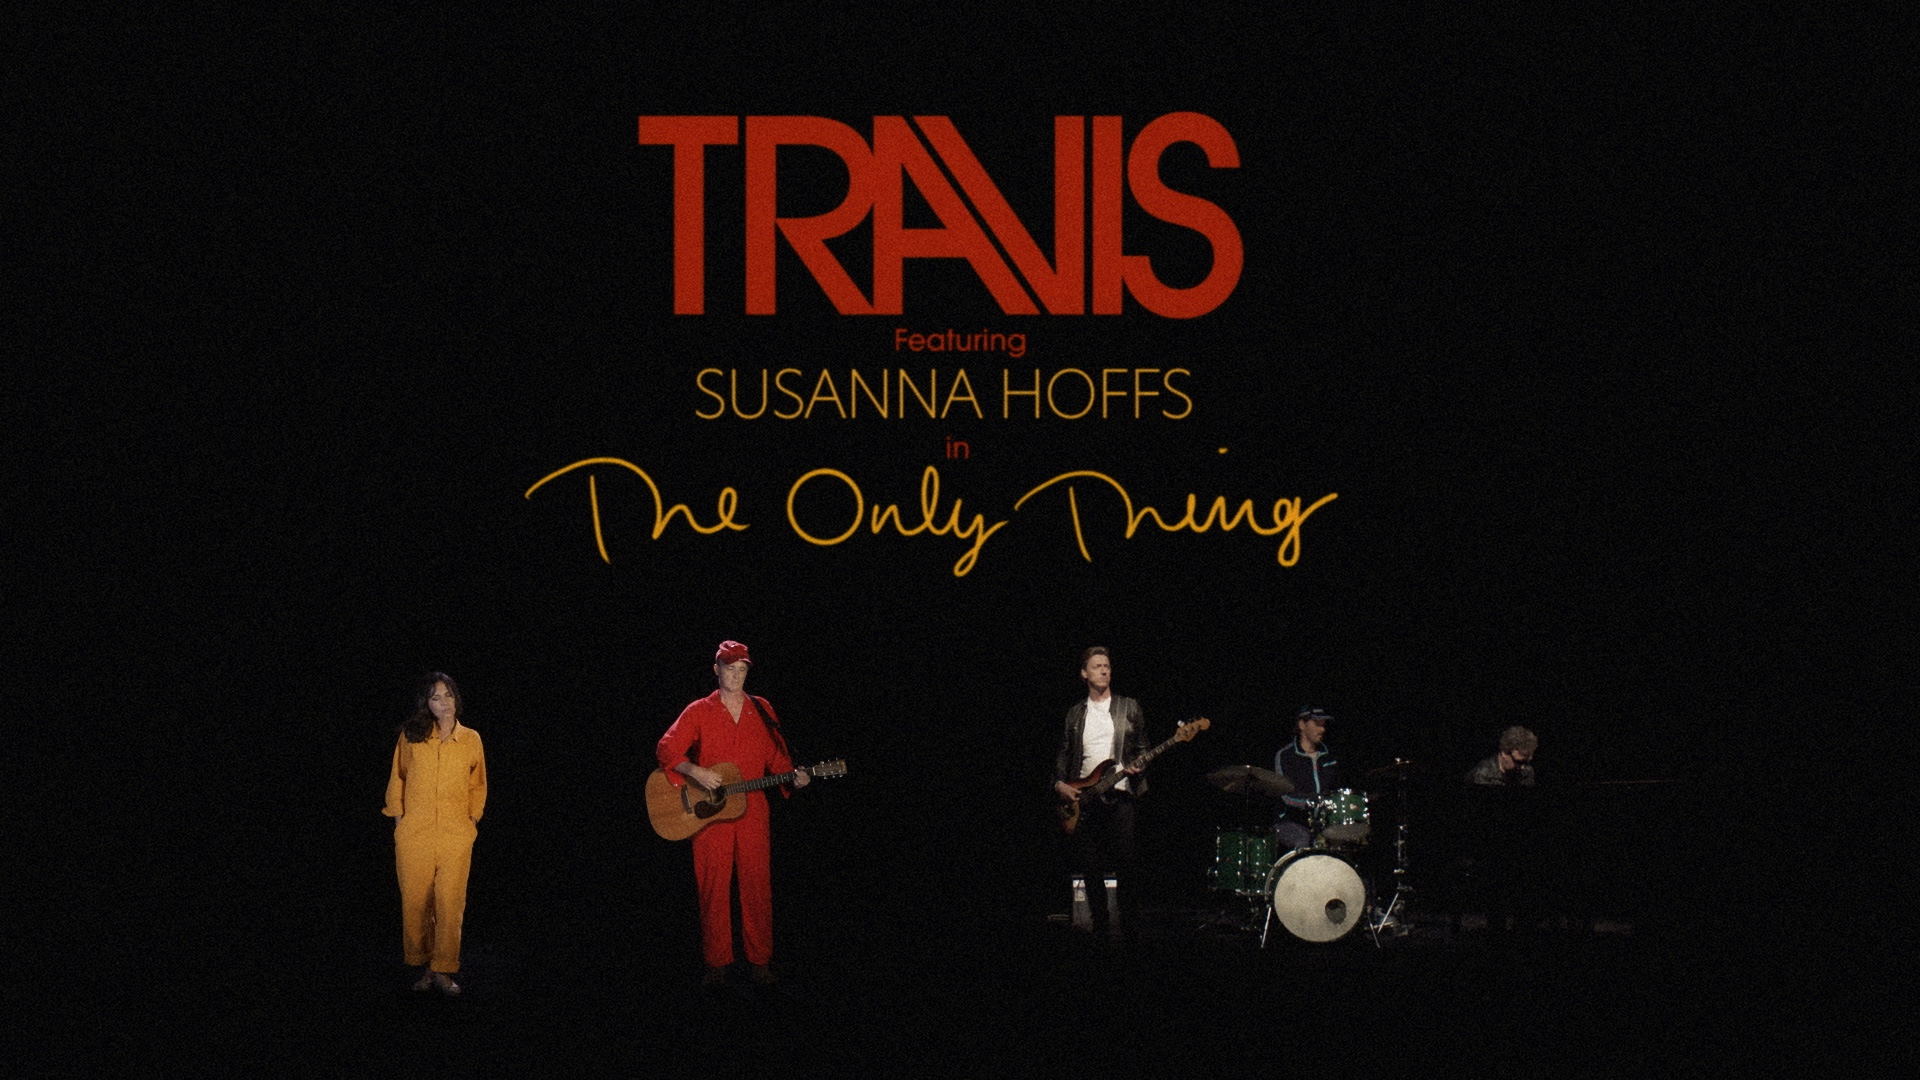 Travis Unveil Video For New Single'The Only Thing'